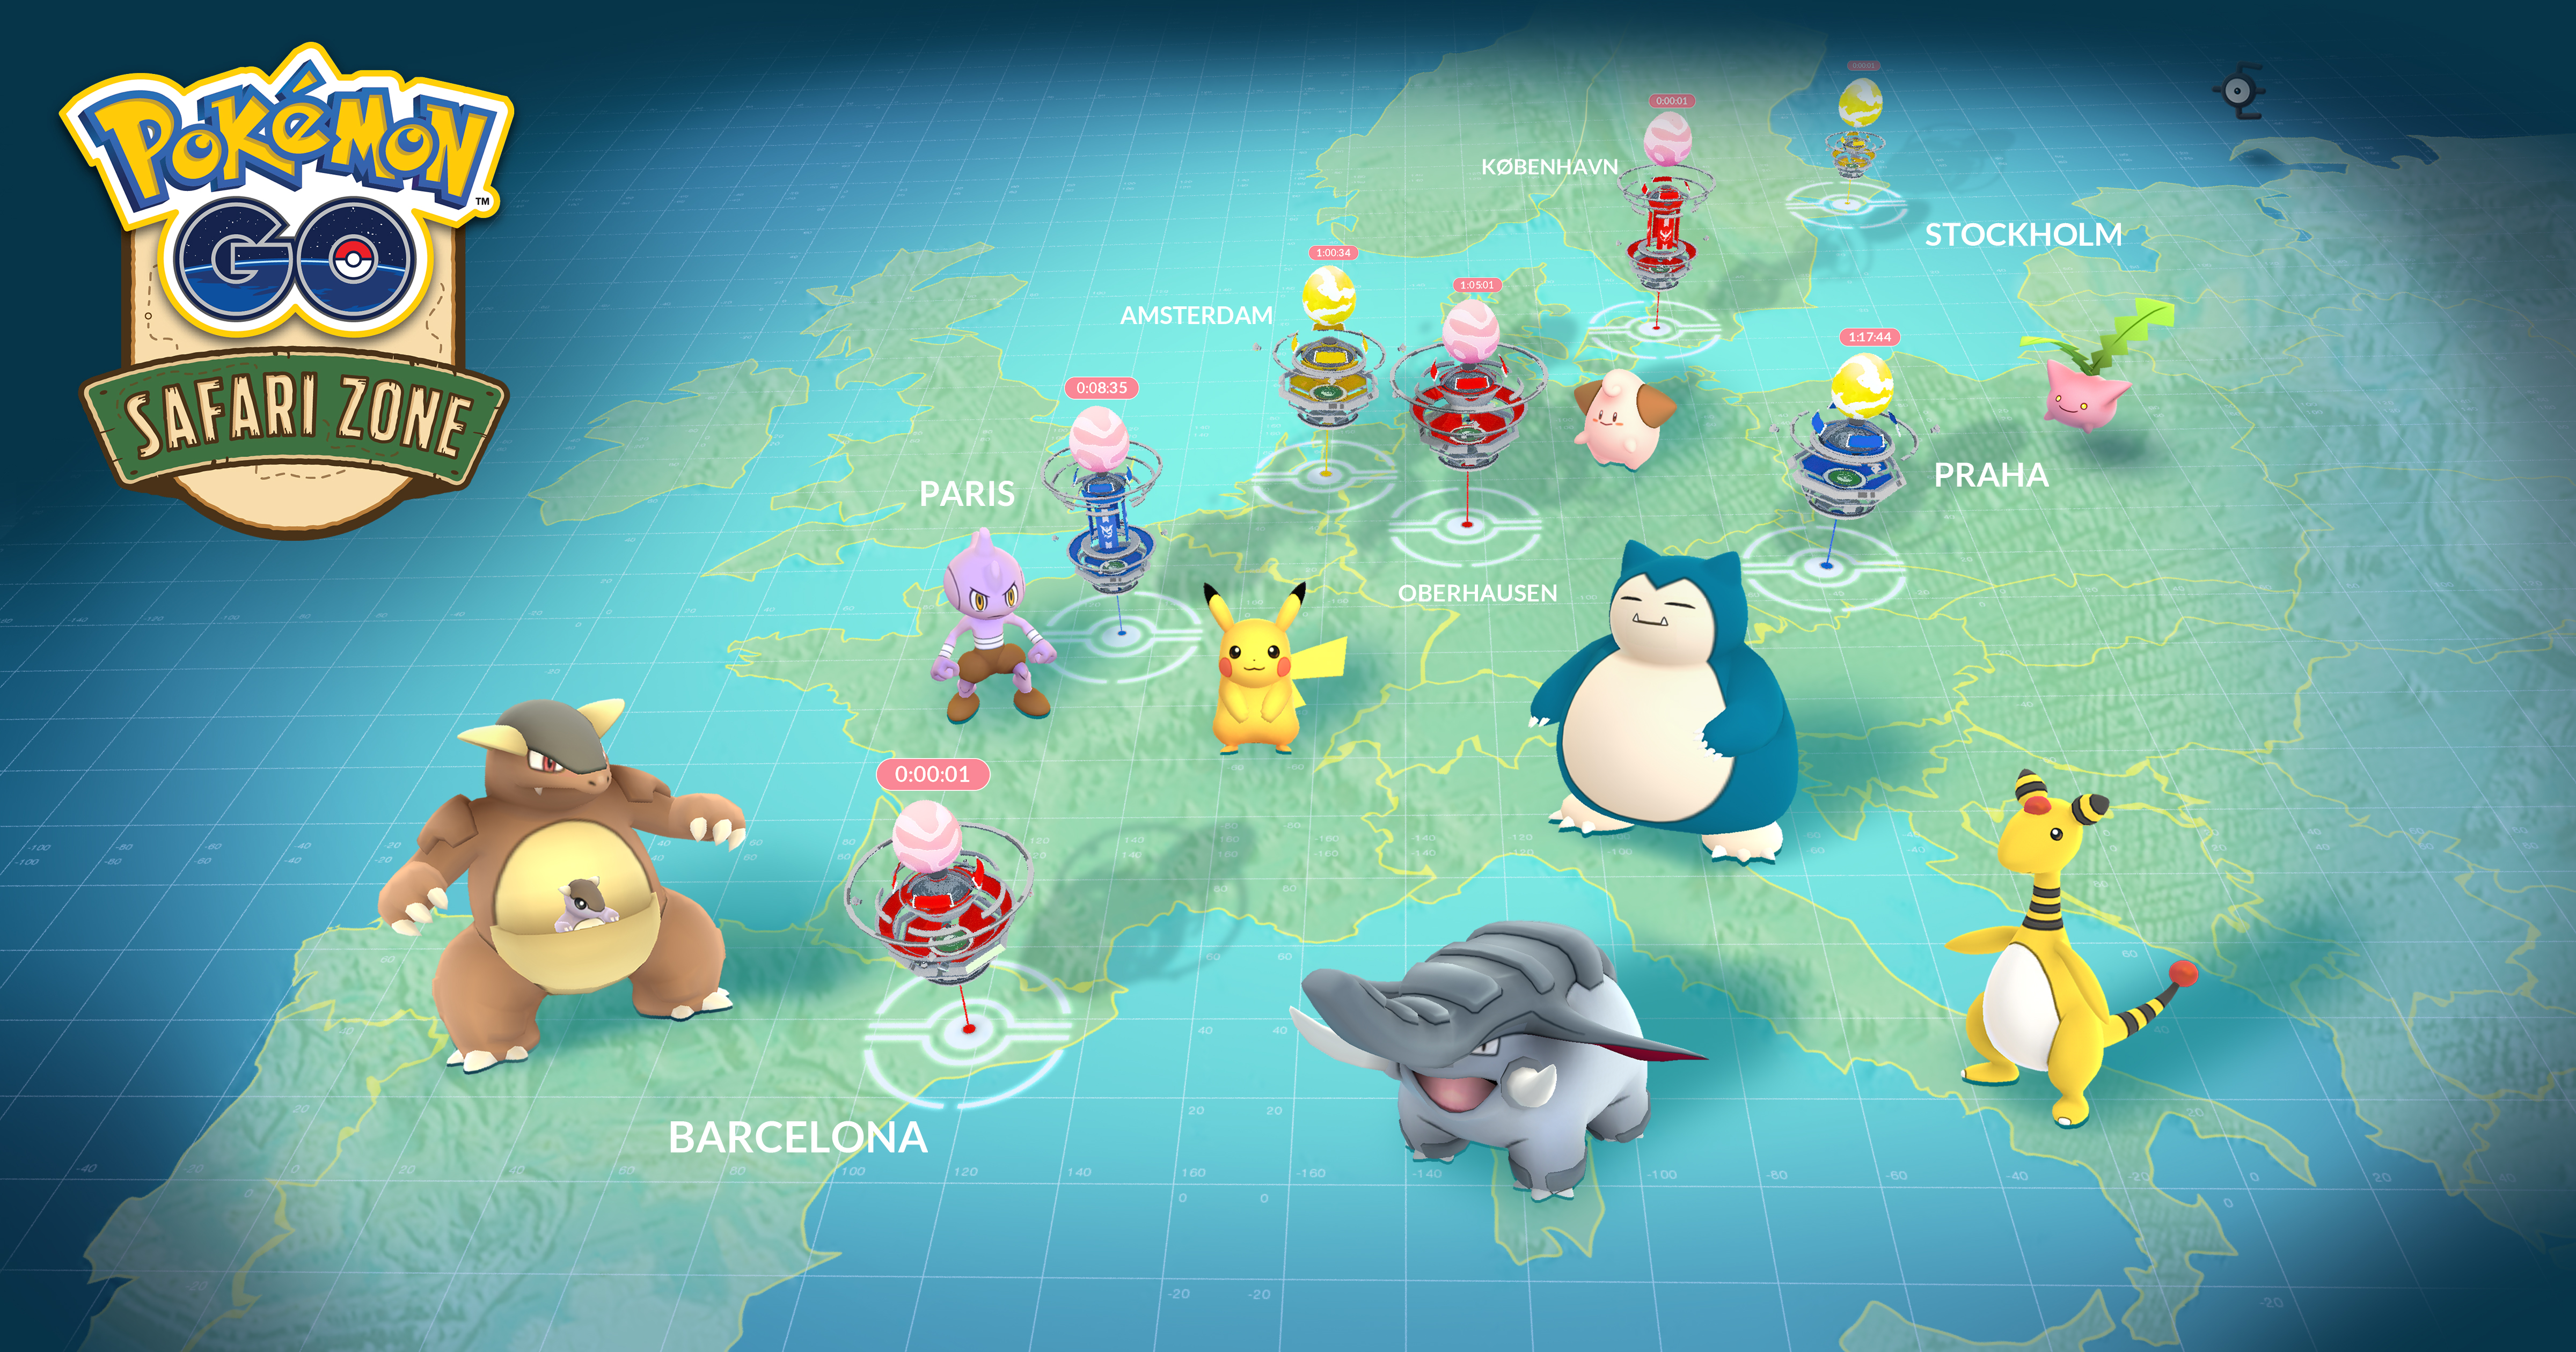 Dataminer finds over 100 shinies within Pokemon GO - VG247